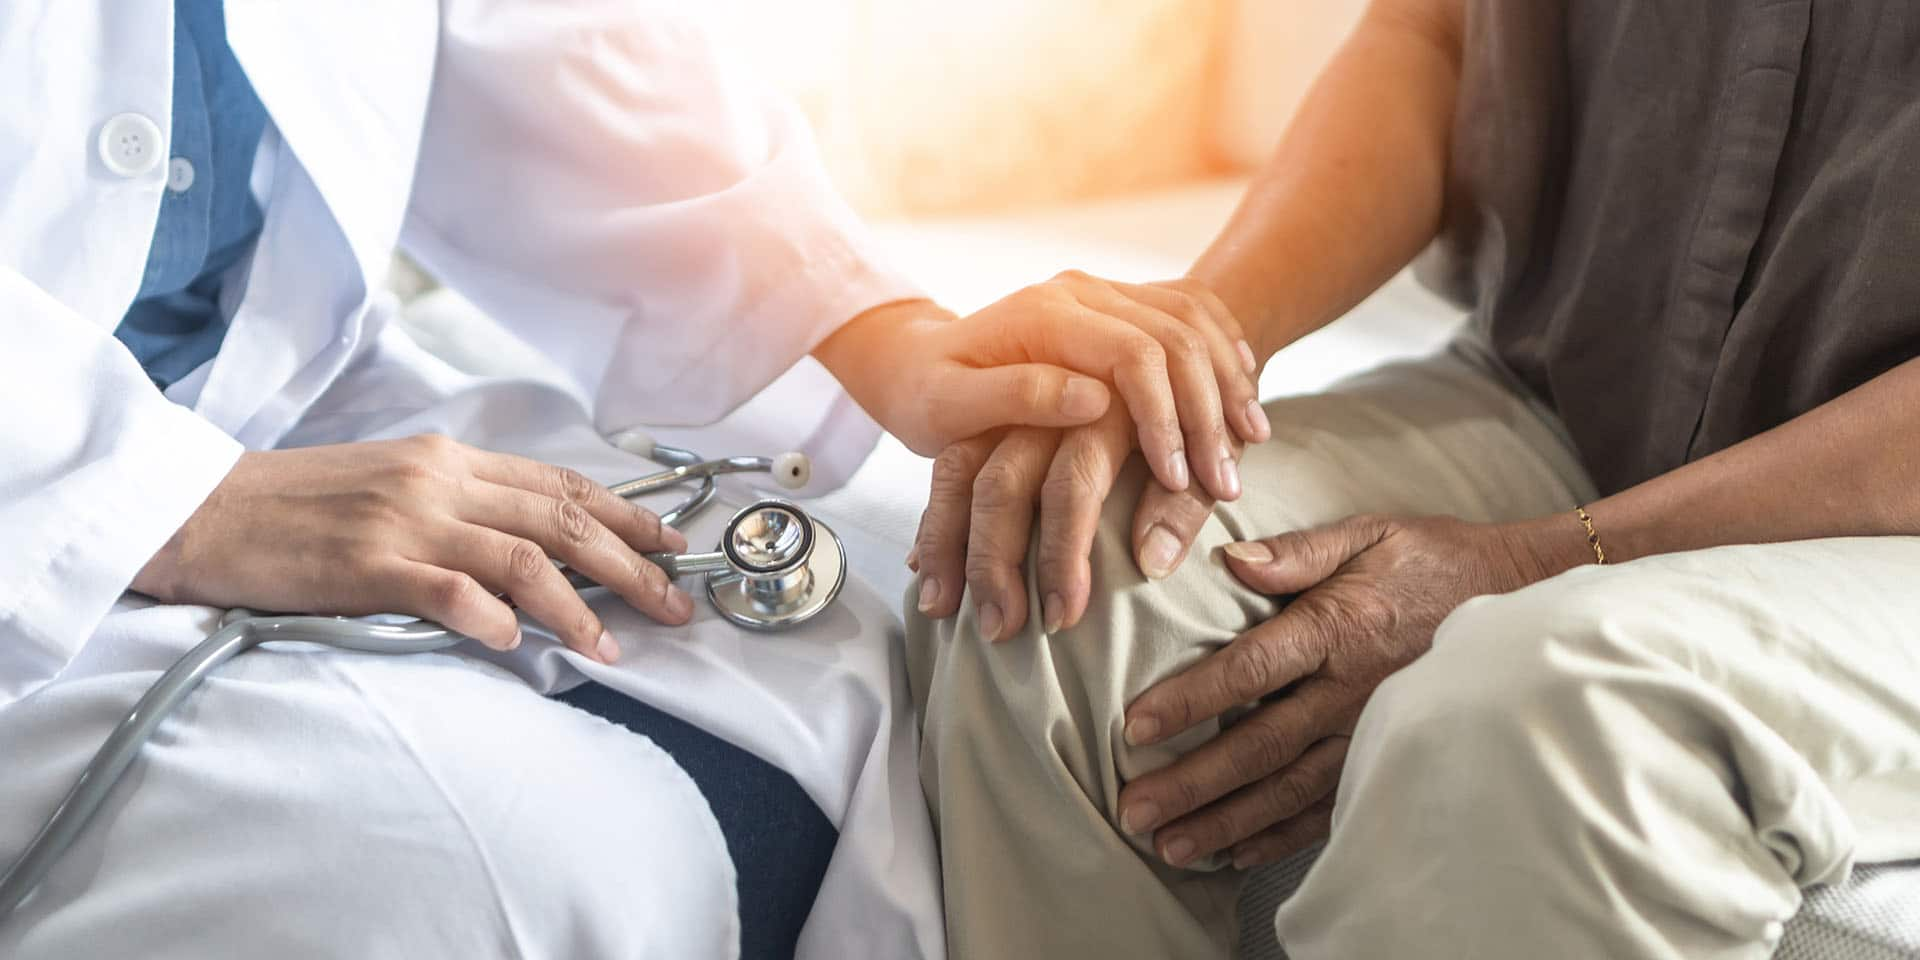 Image for Residential Care Home vs. Nursing Home: What's the Difference?